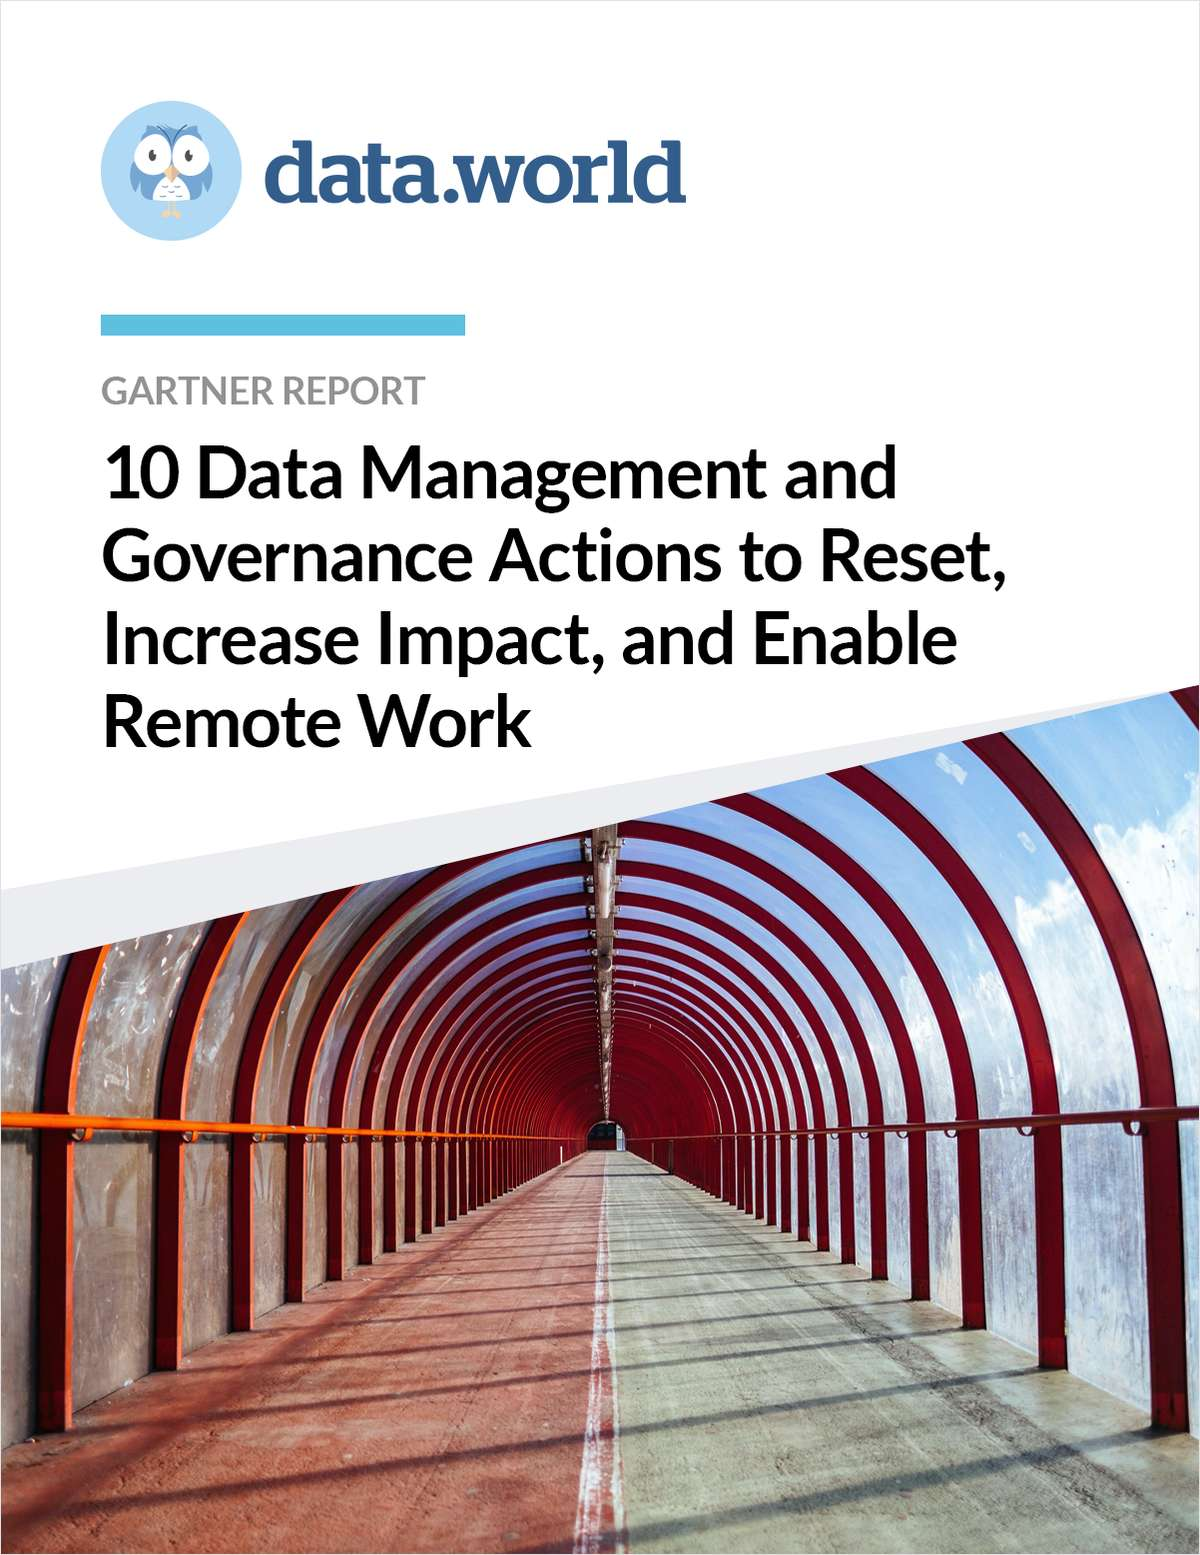 Gartner Report: 10 Data Management and Governance Actions to Reset, Increase Impact and Enable Remote Works